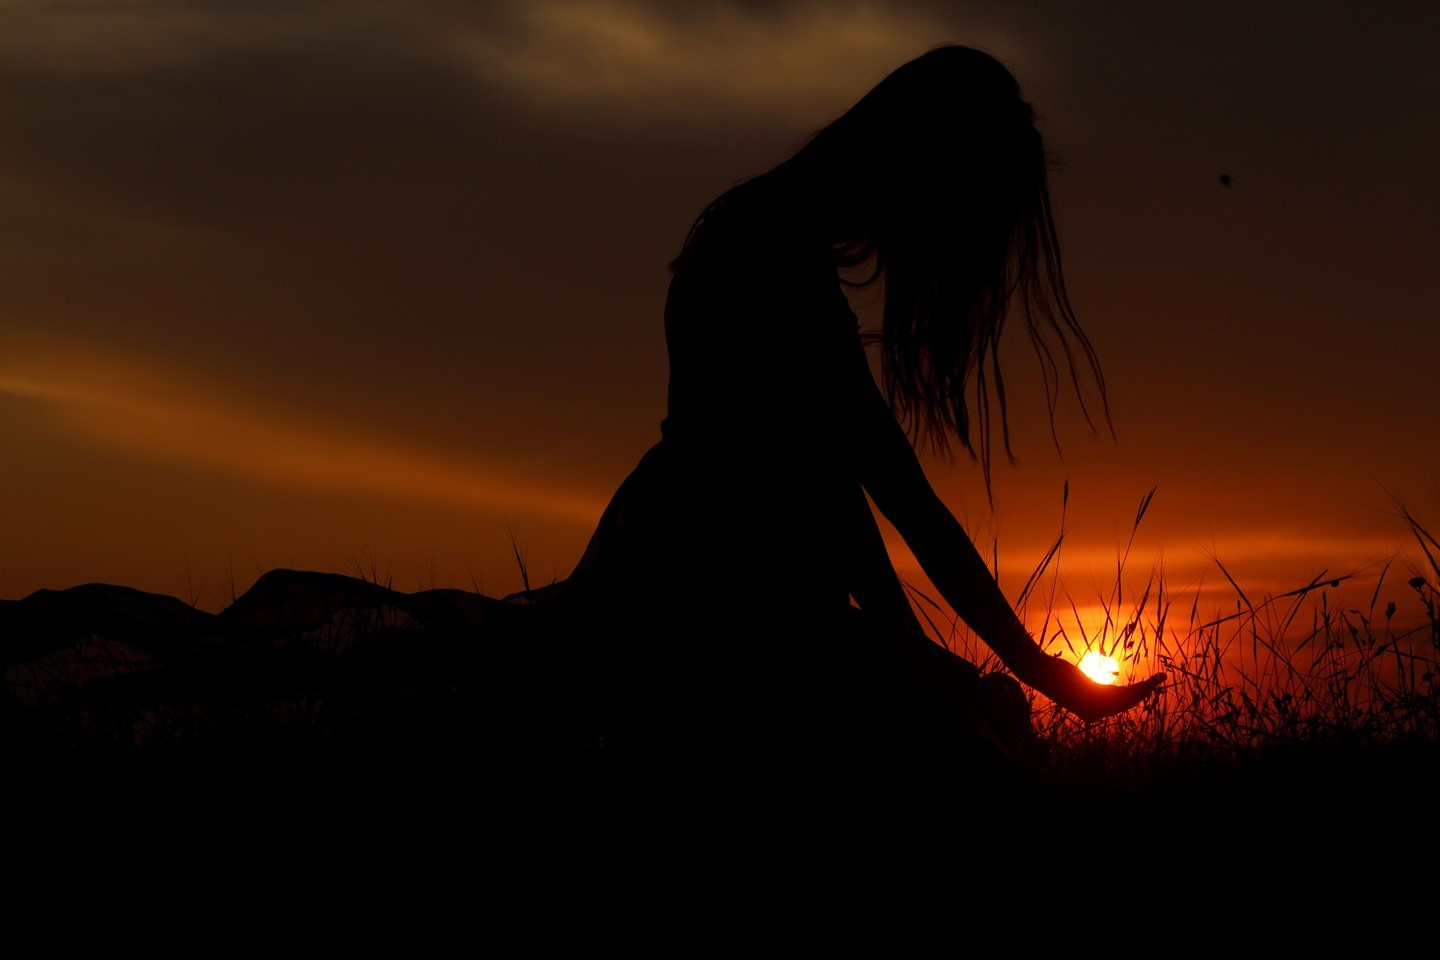 Holding the light through the darkness is 99% of the battle right now. Thats where you'll find your true inner beauty.